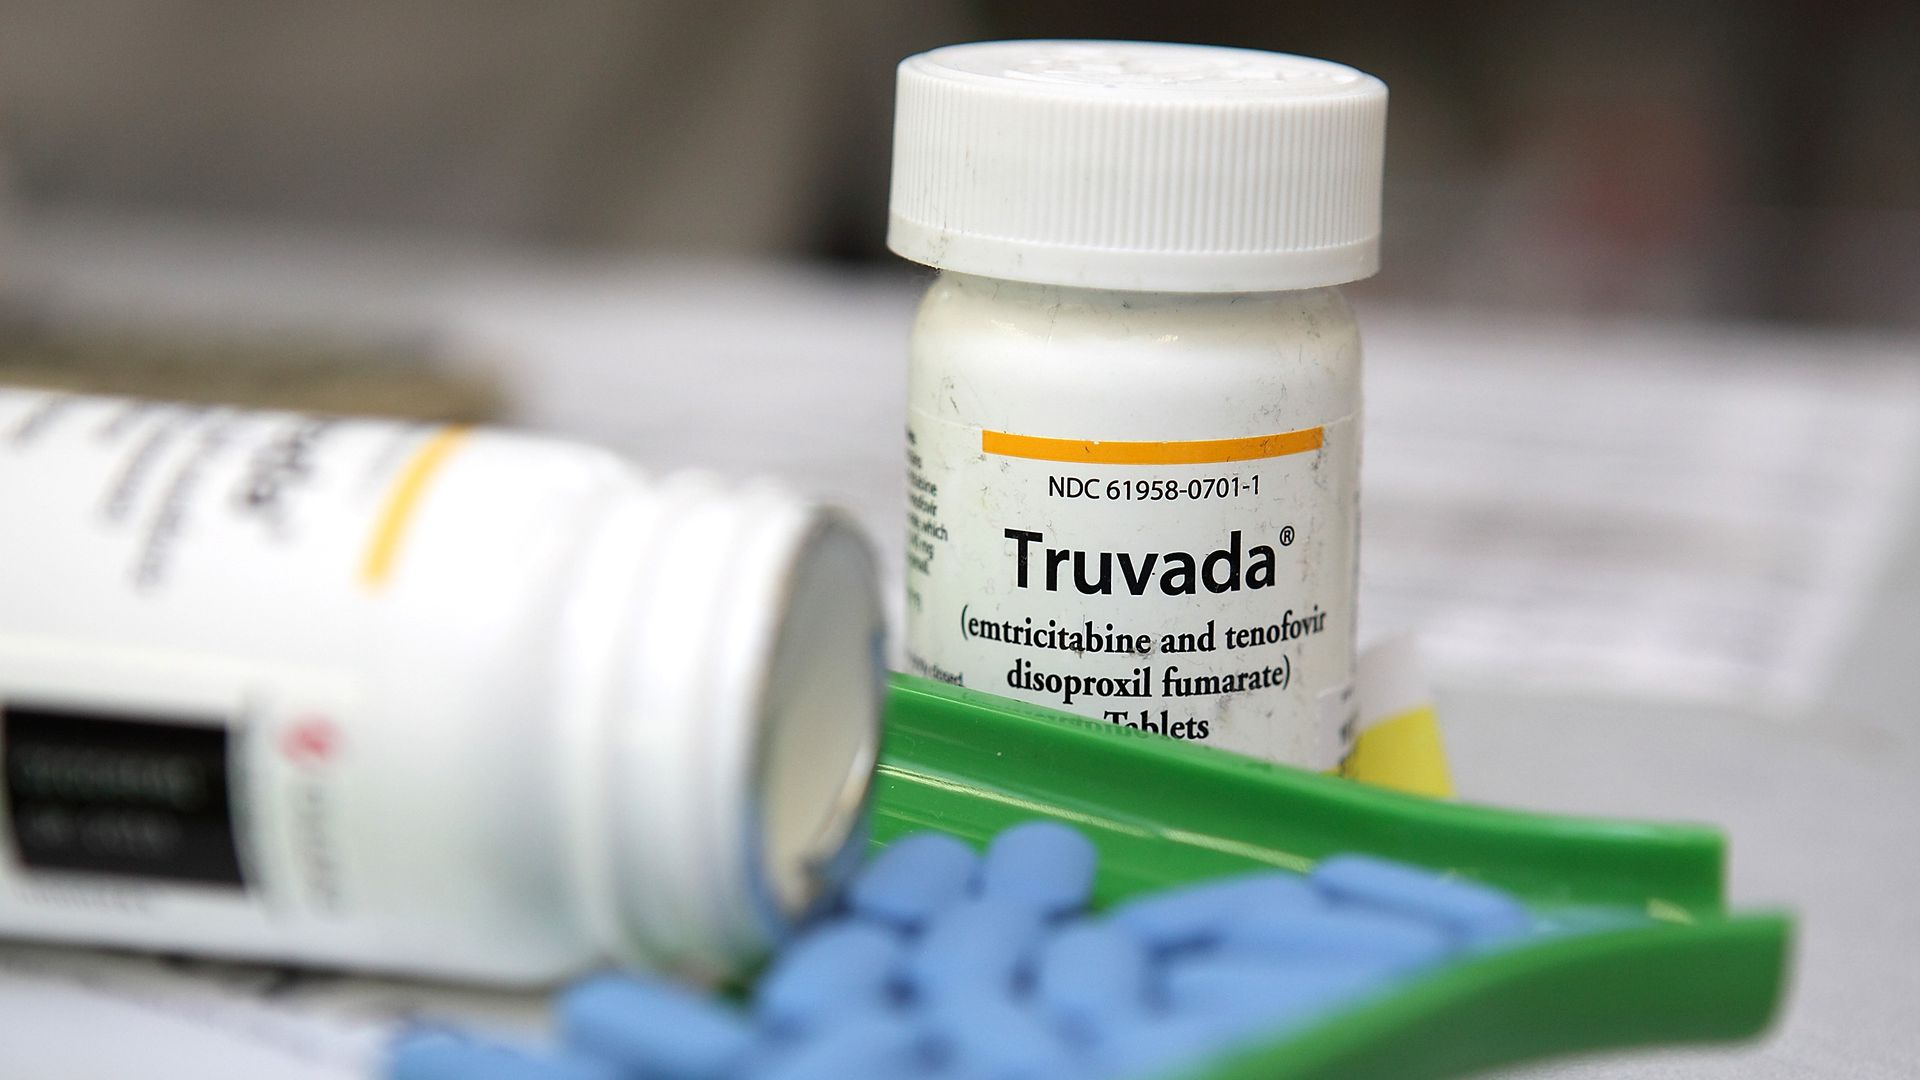 In this image, blue Truvada pills are being counted at a pharmacy. A pill bottle sits behind the counter.